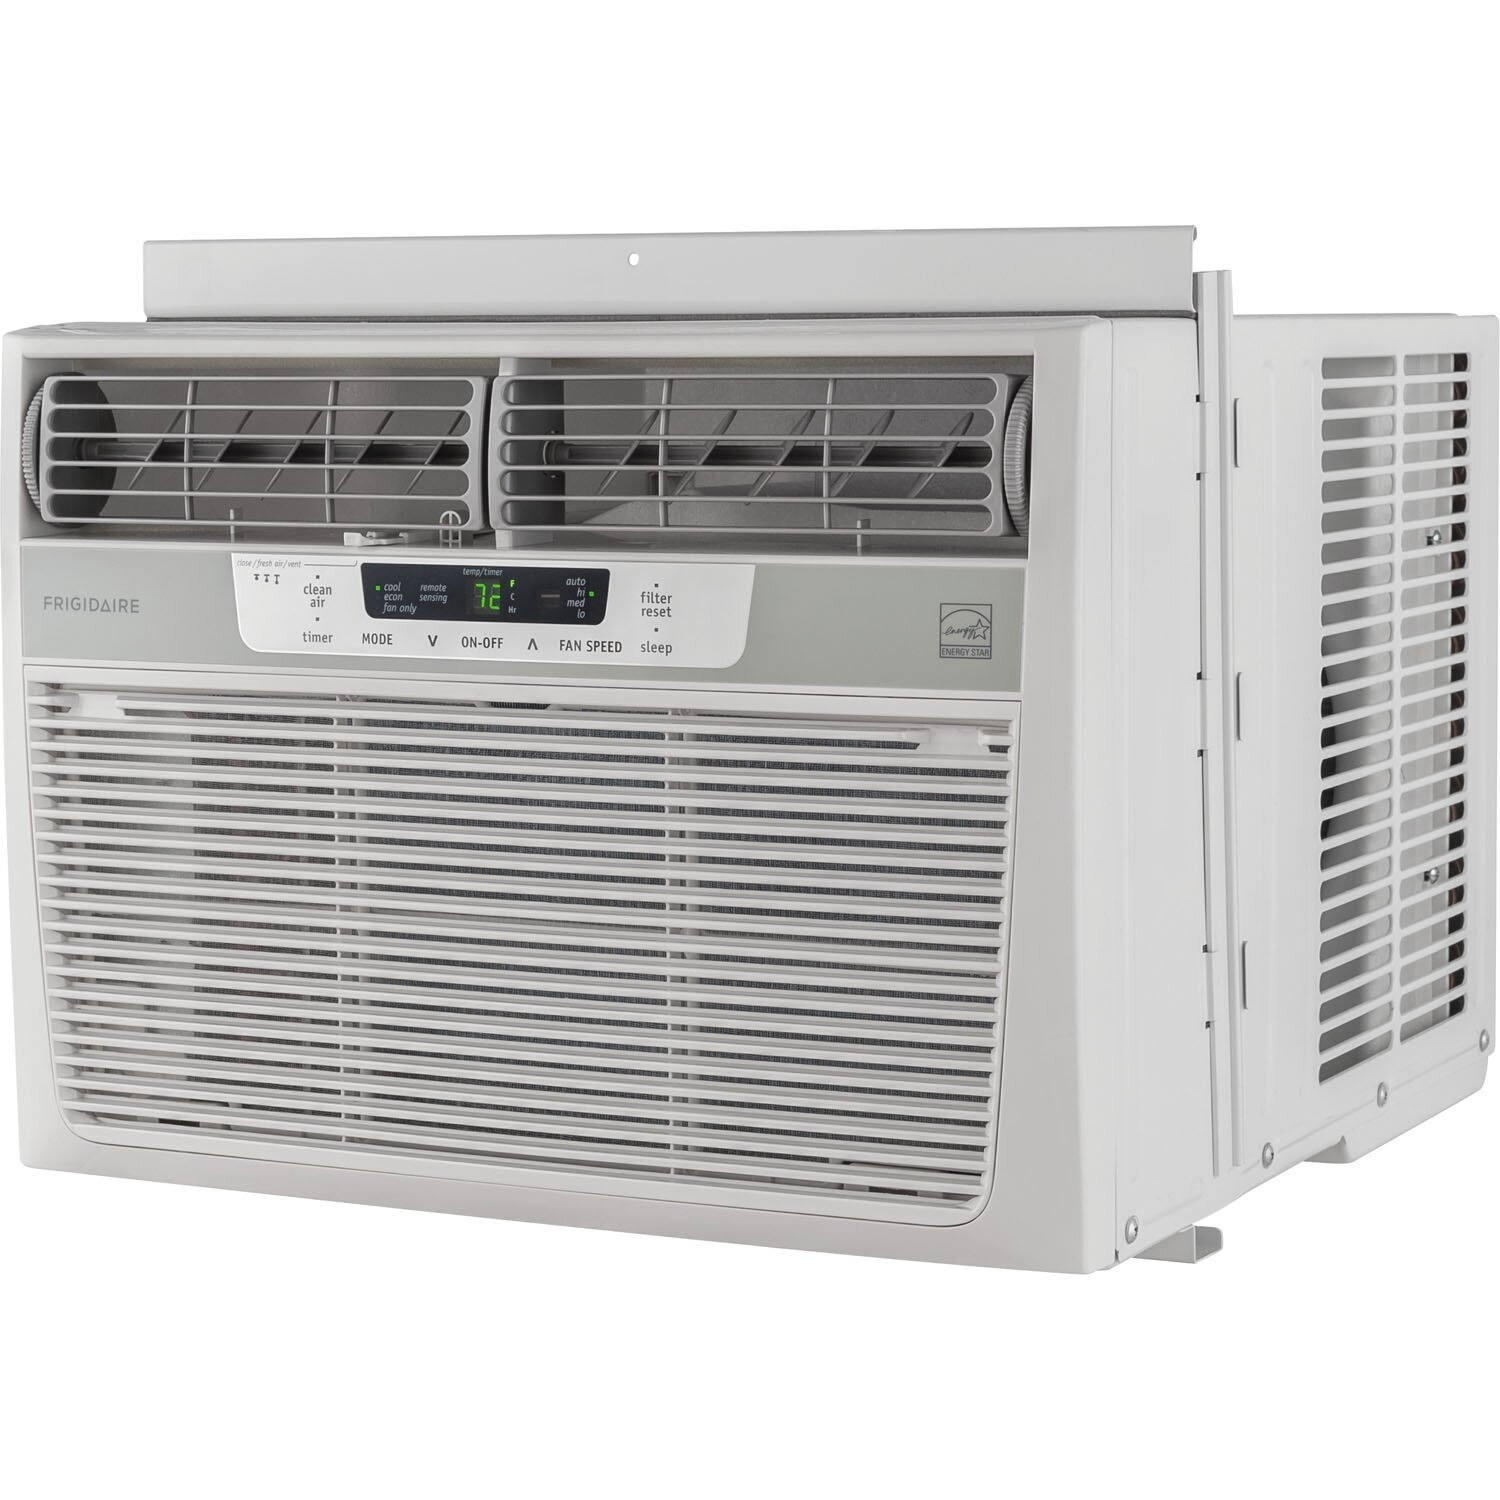 #446E35 Frigidaire 10 000 BTU Energy Star Window Compact Air  Highly Rated 11979 Frigidaire Window Air Conditioner With Heater wallpapers with 1500x1500 px on helpvideos.info - Air Conditioners, Air Coolers and more